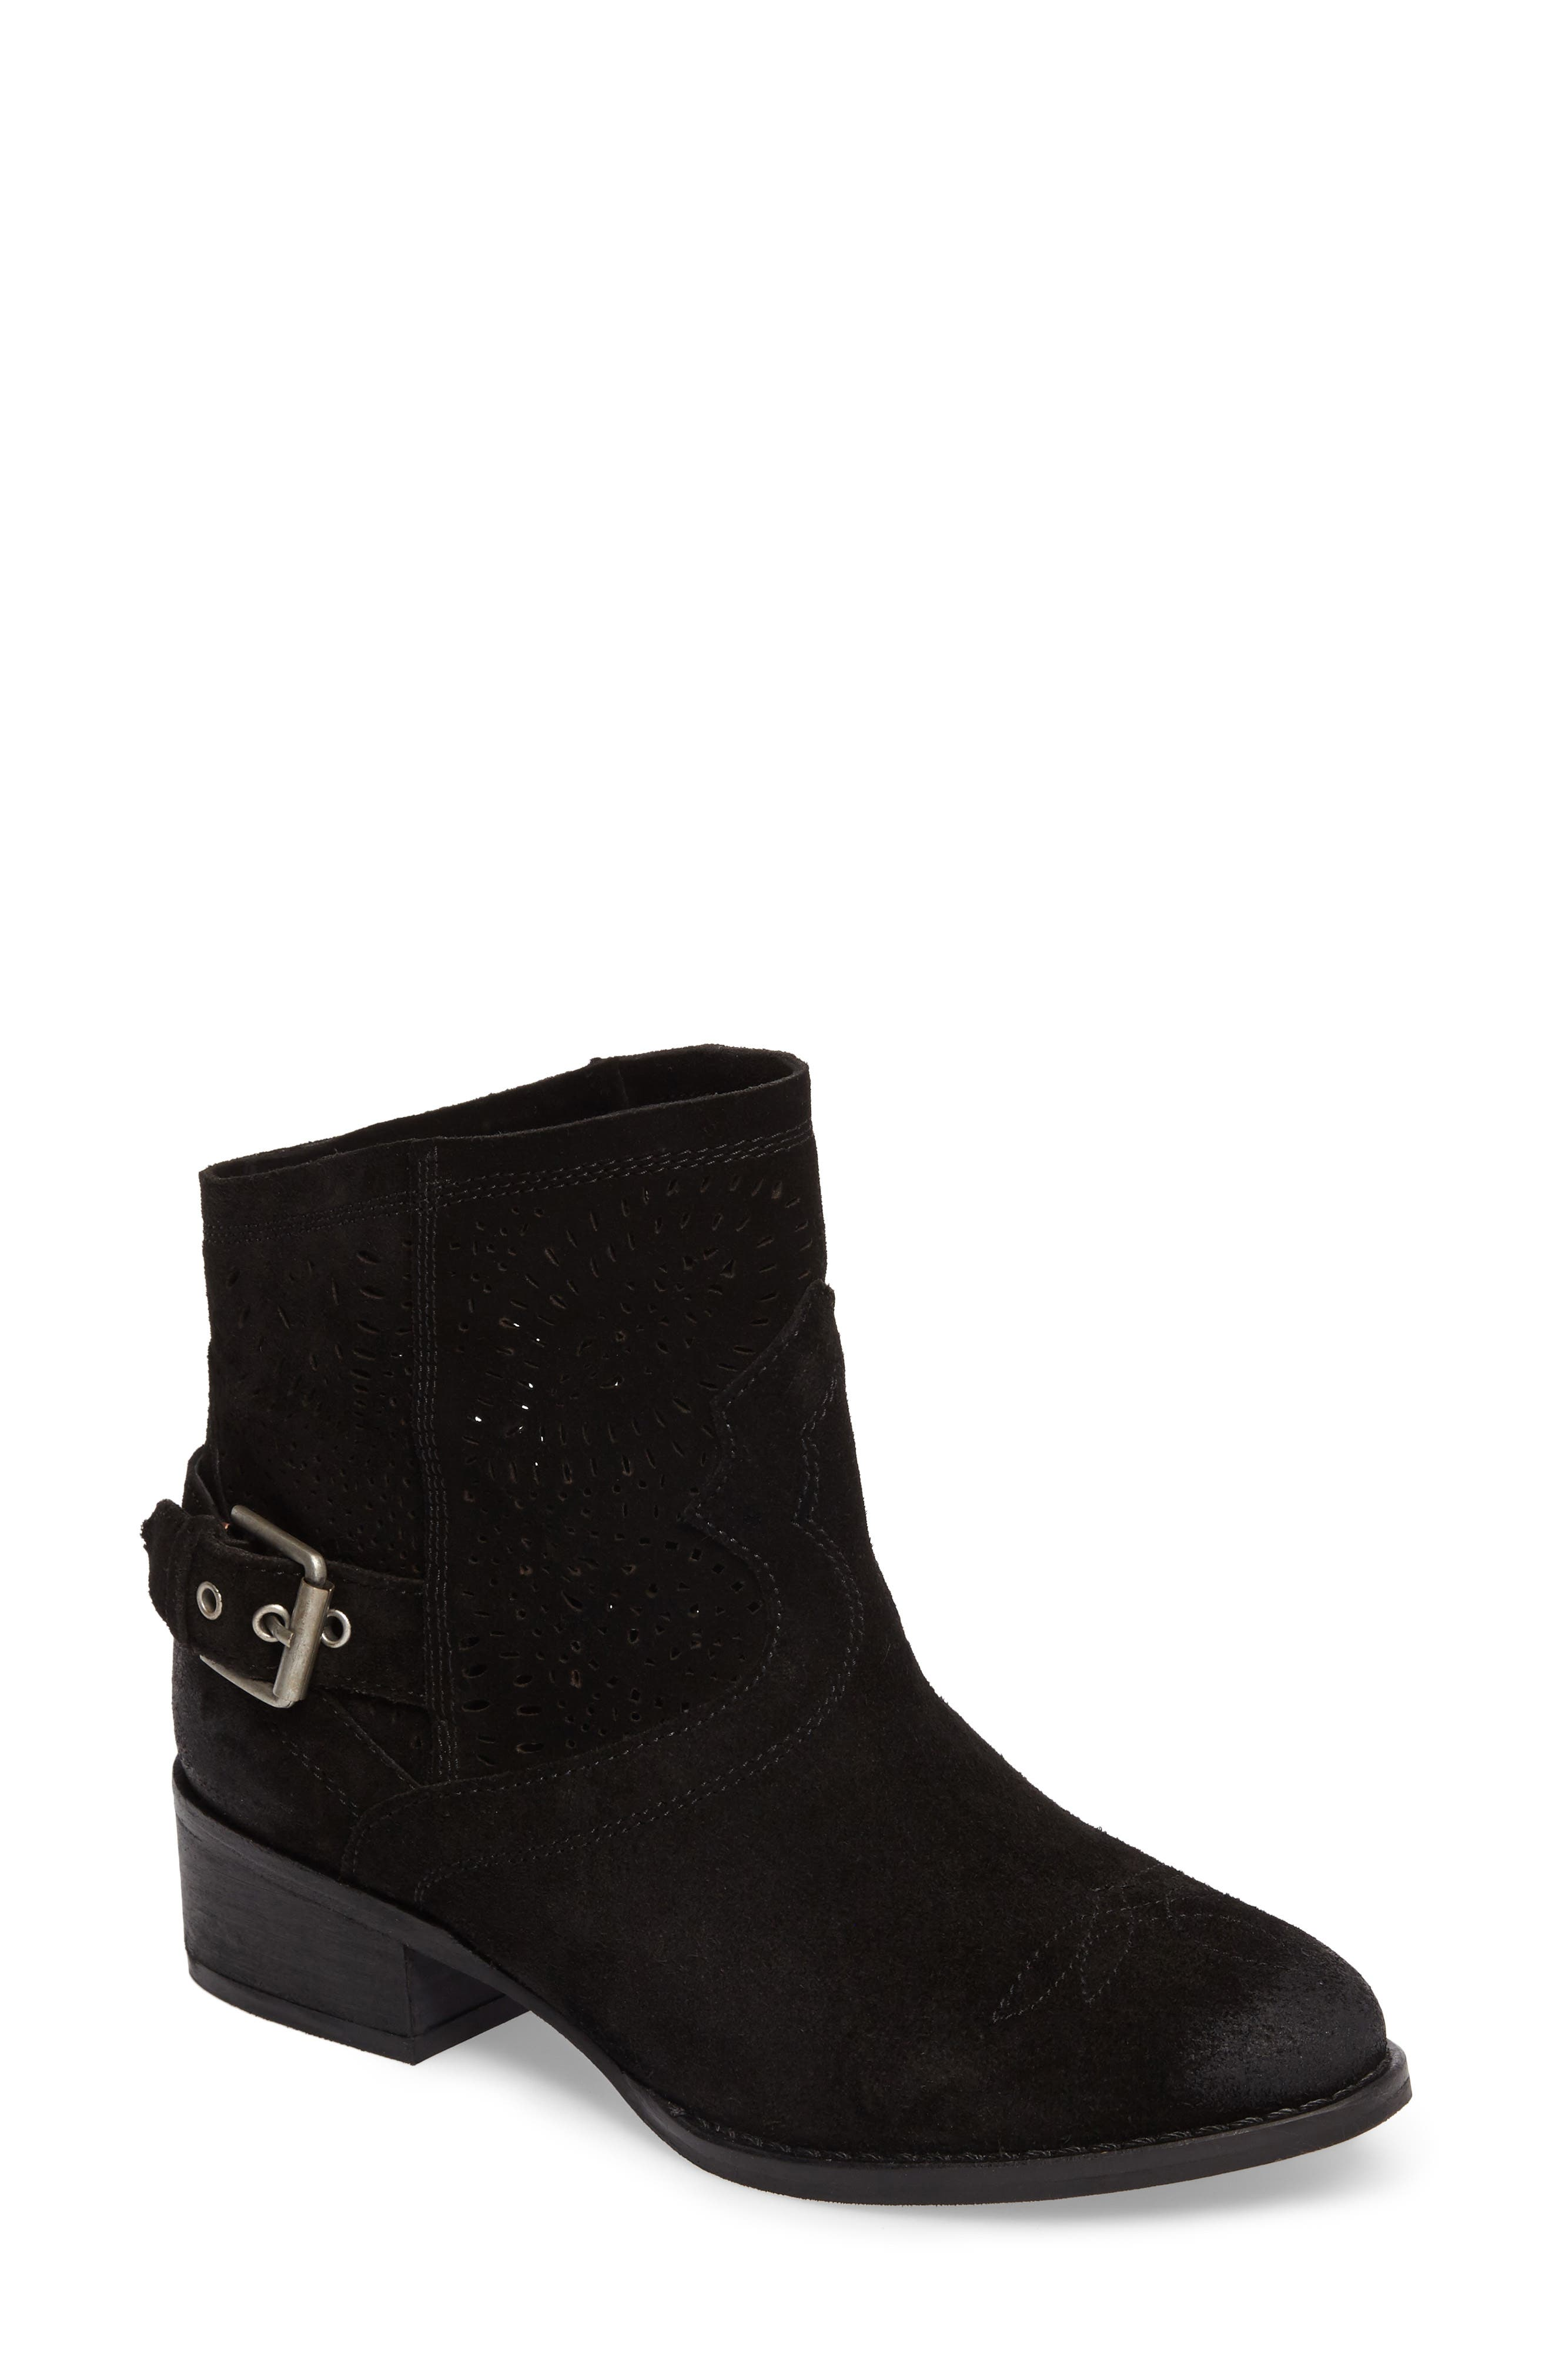 Zoey Perforated Bootie,                             Main thumbnail 1, color,                             001